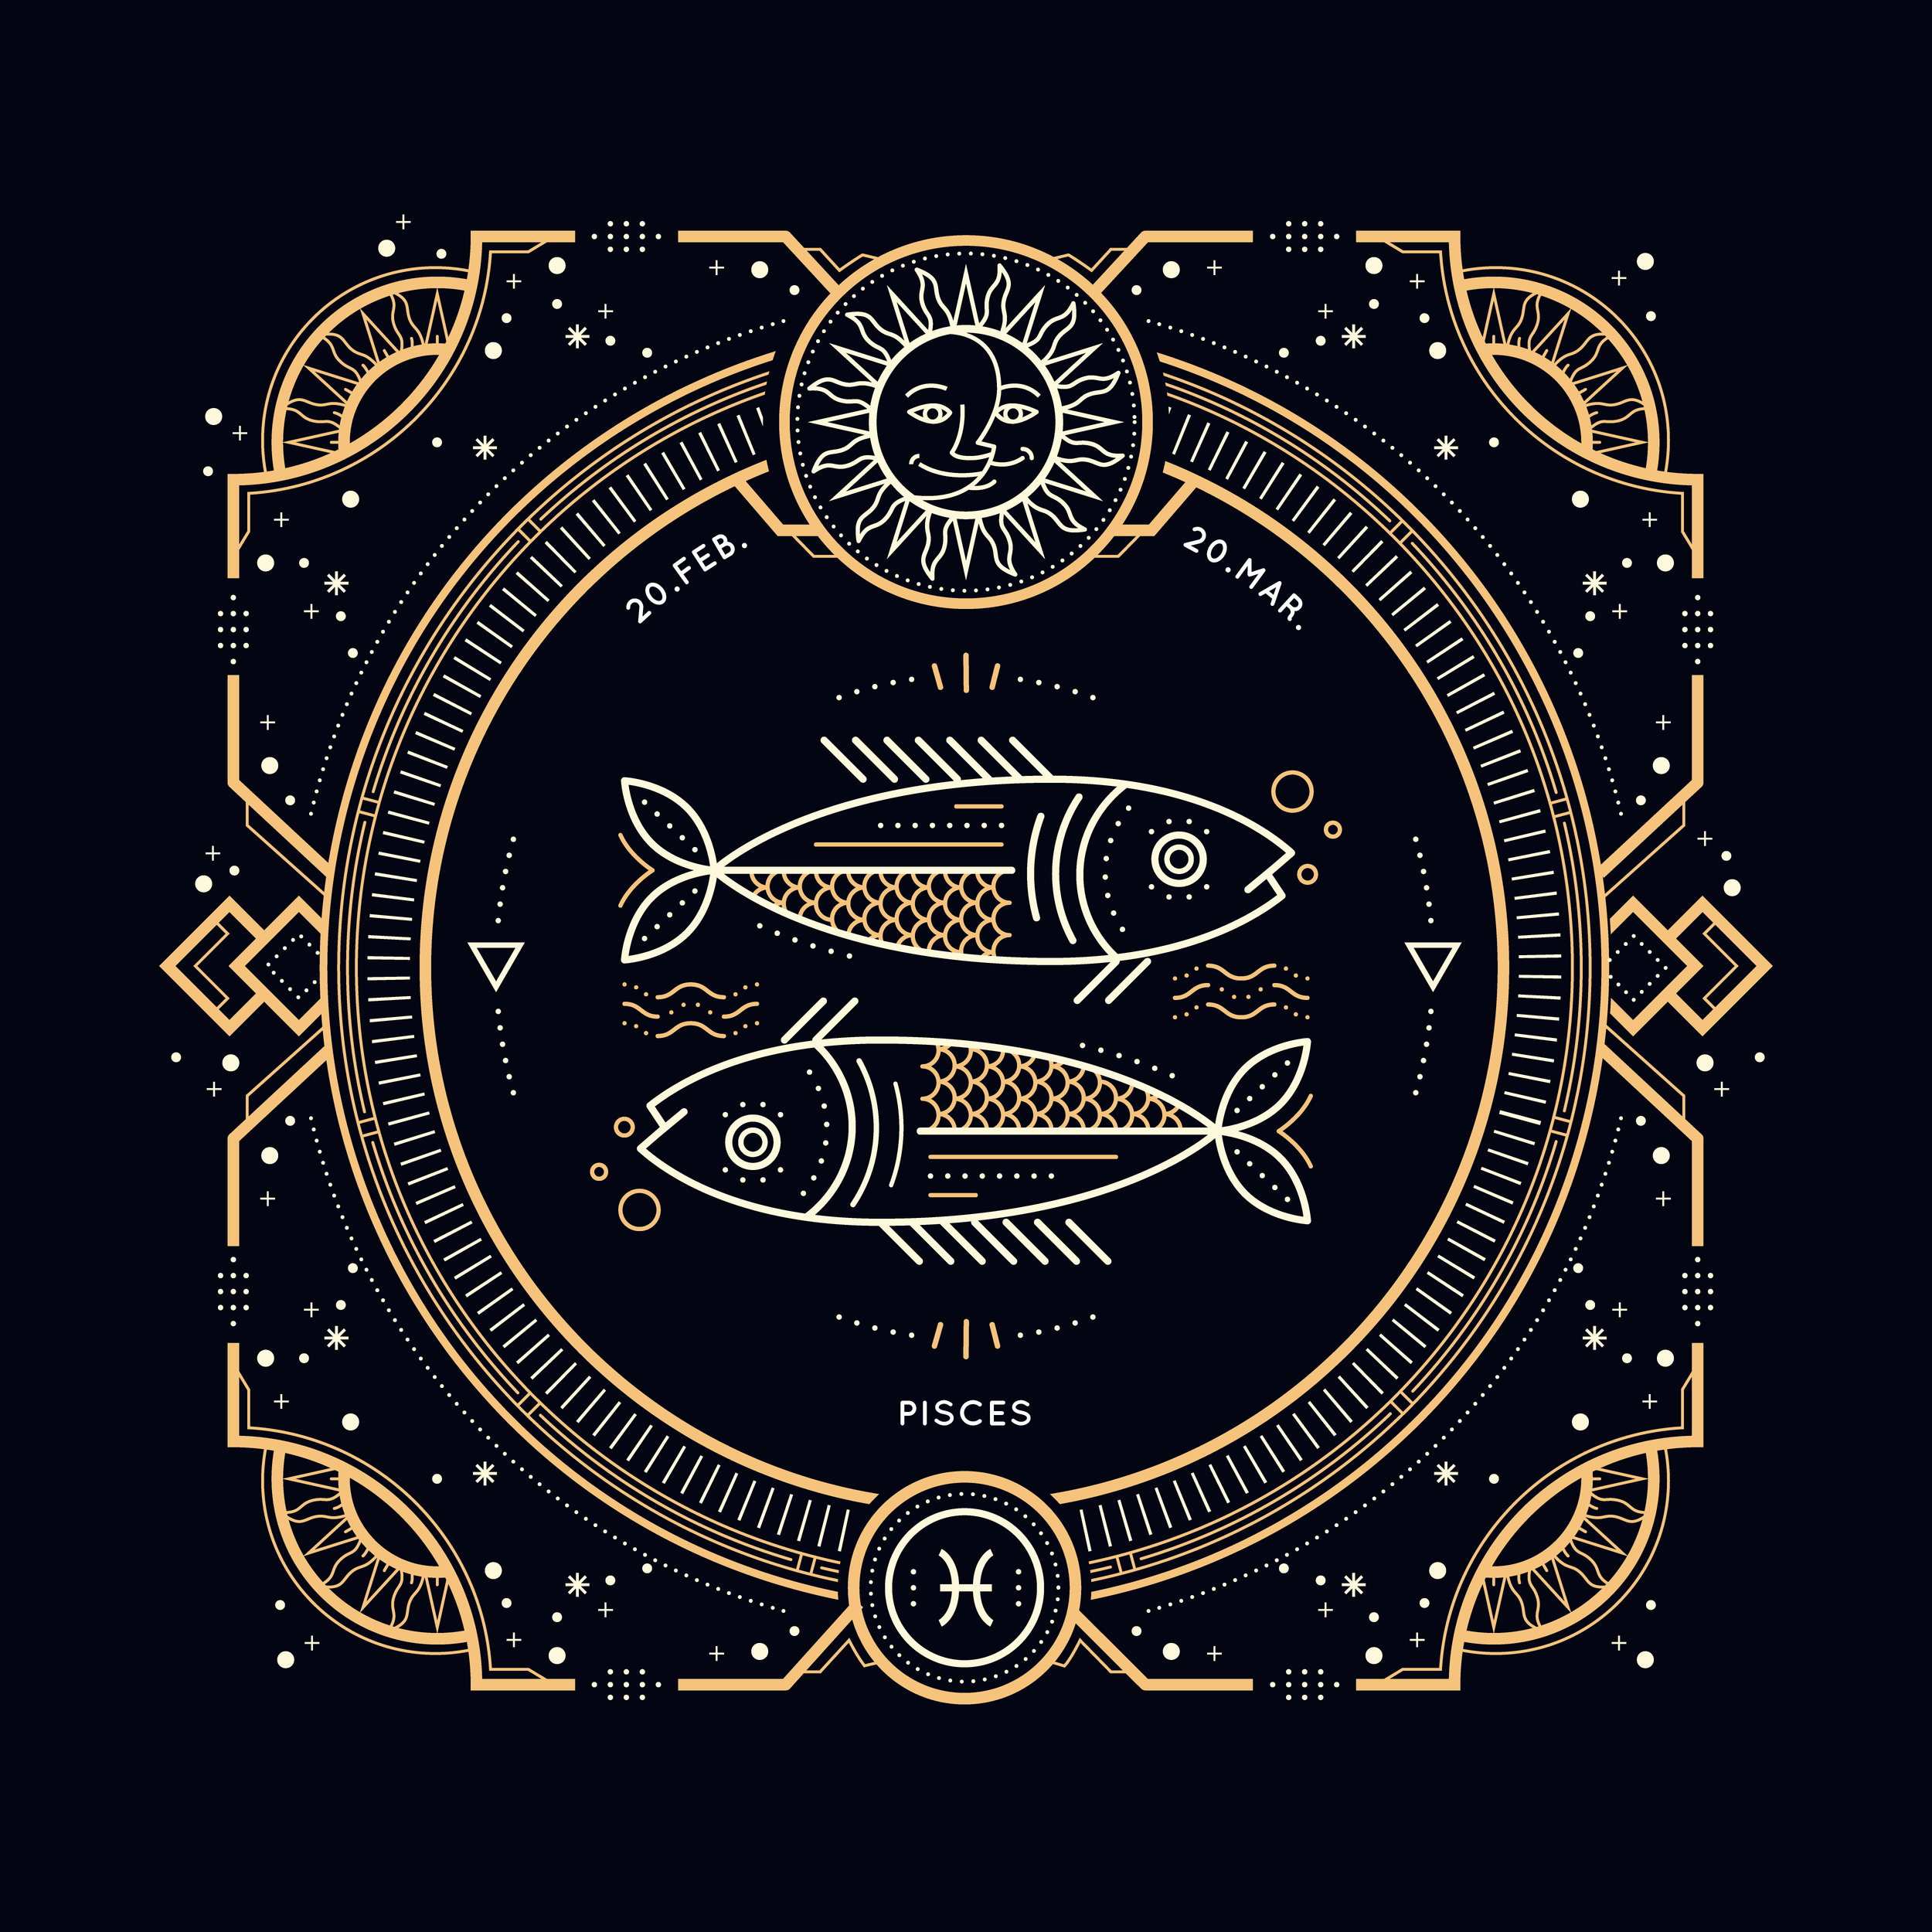 Zodiac-signs-black-gold_Pisces.jpg